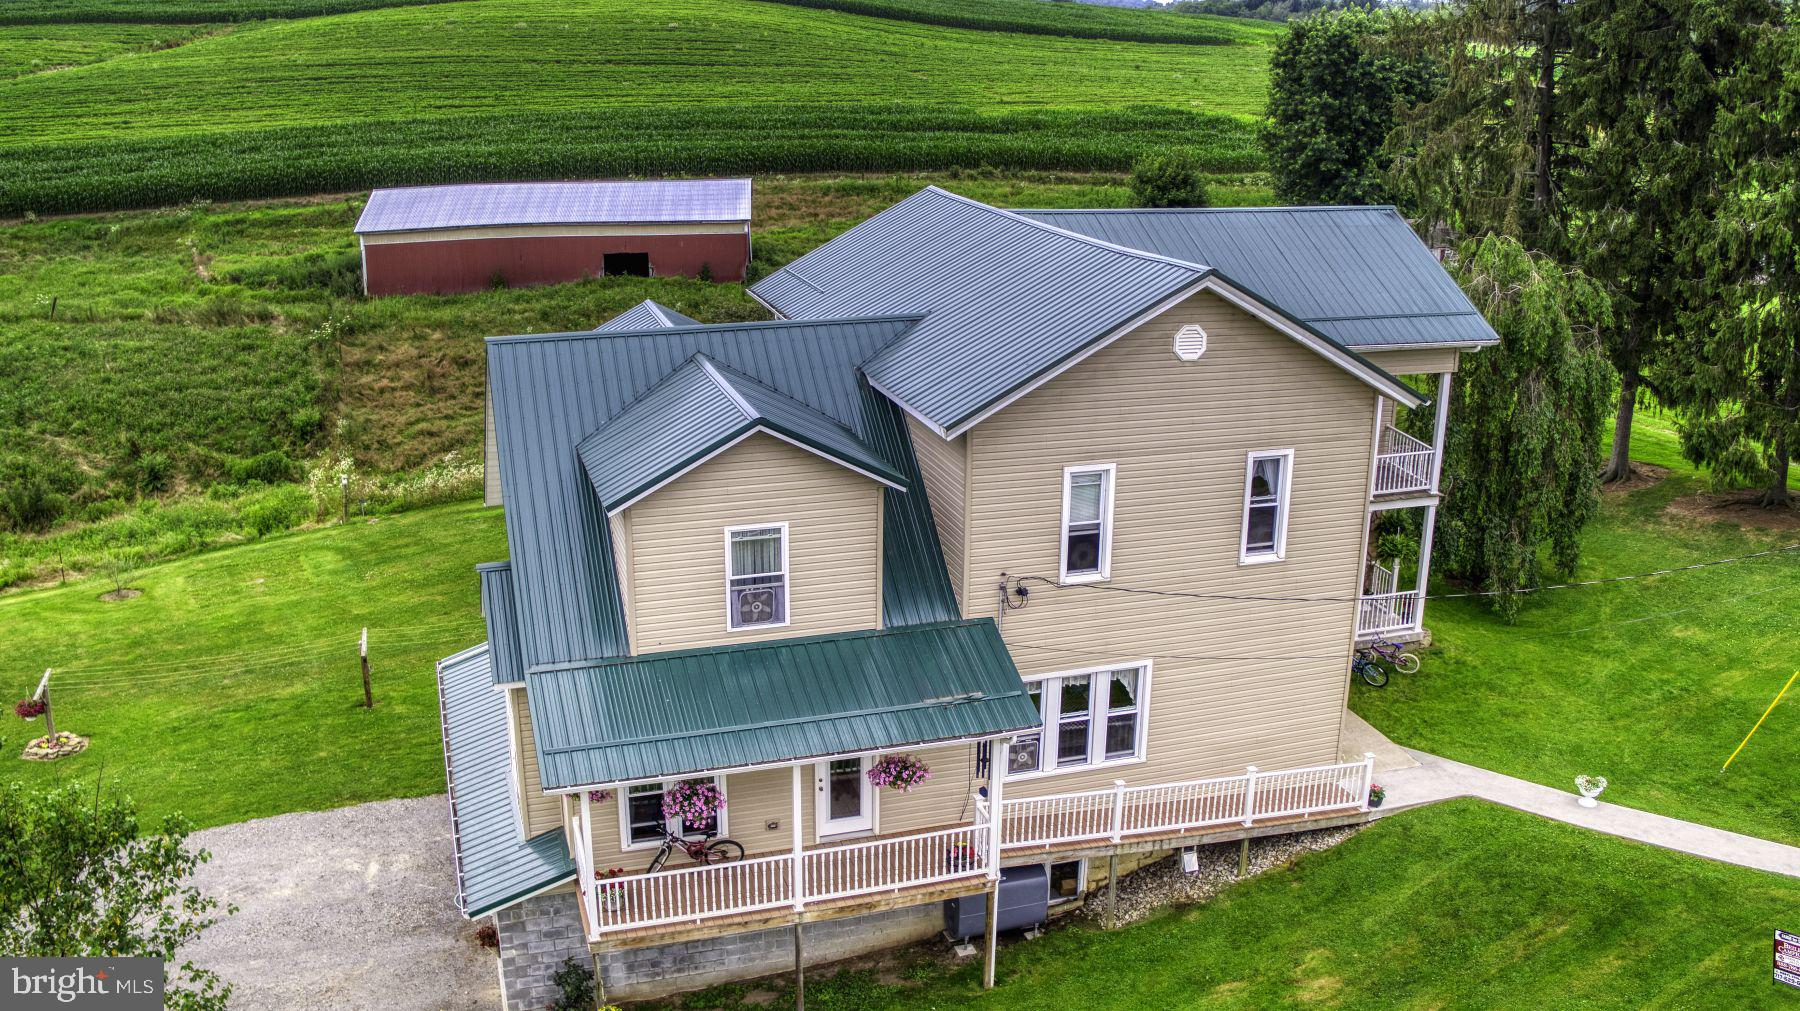 273 MCVICKER ROAD, STOYSTOWN, PA 15563